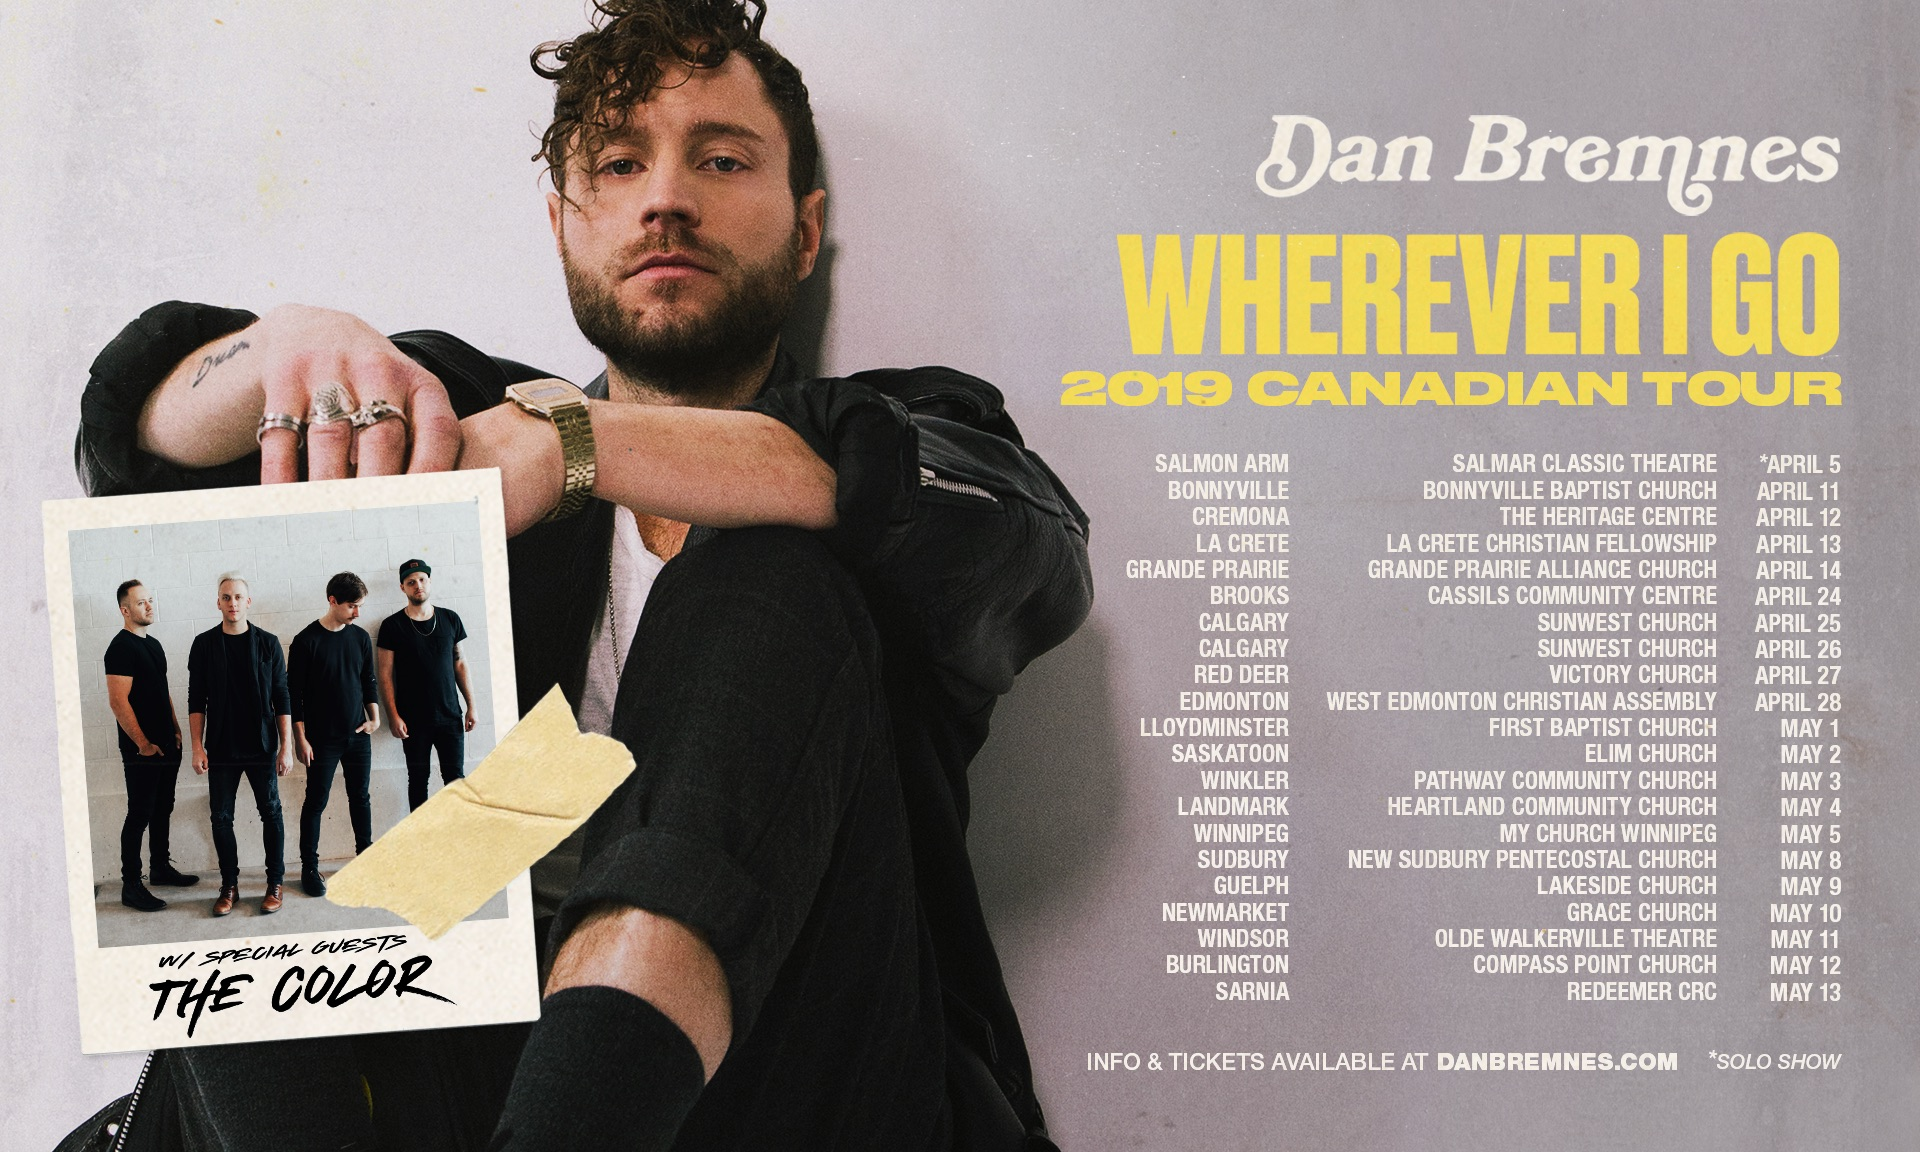 Tickets for Dan Bremnes, Wherever I Go Tour with The Color in Windsor from BuzzTix